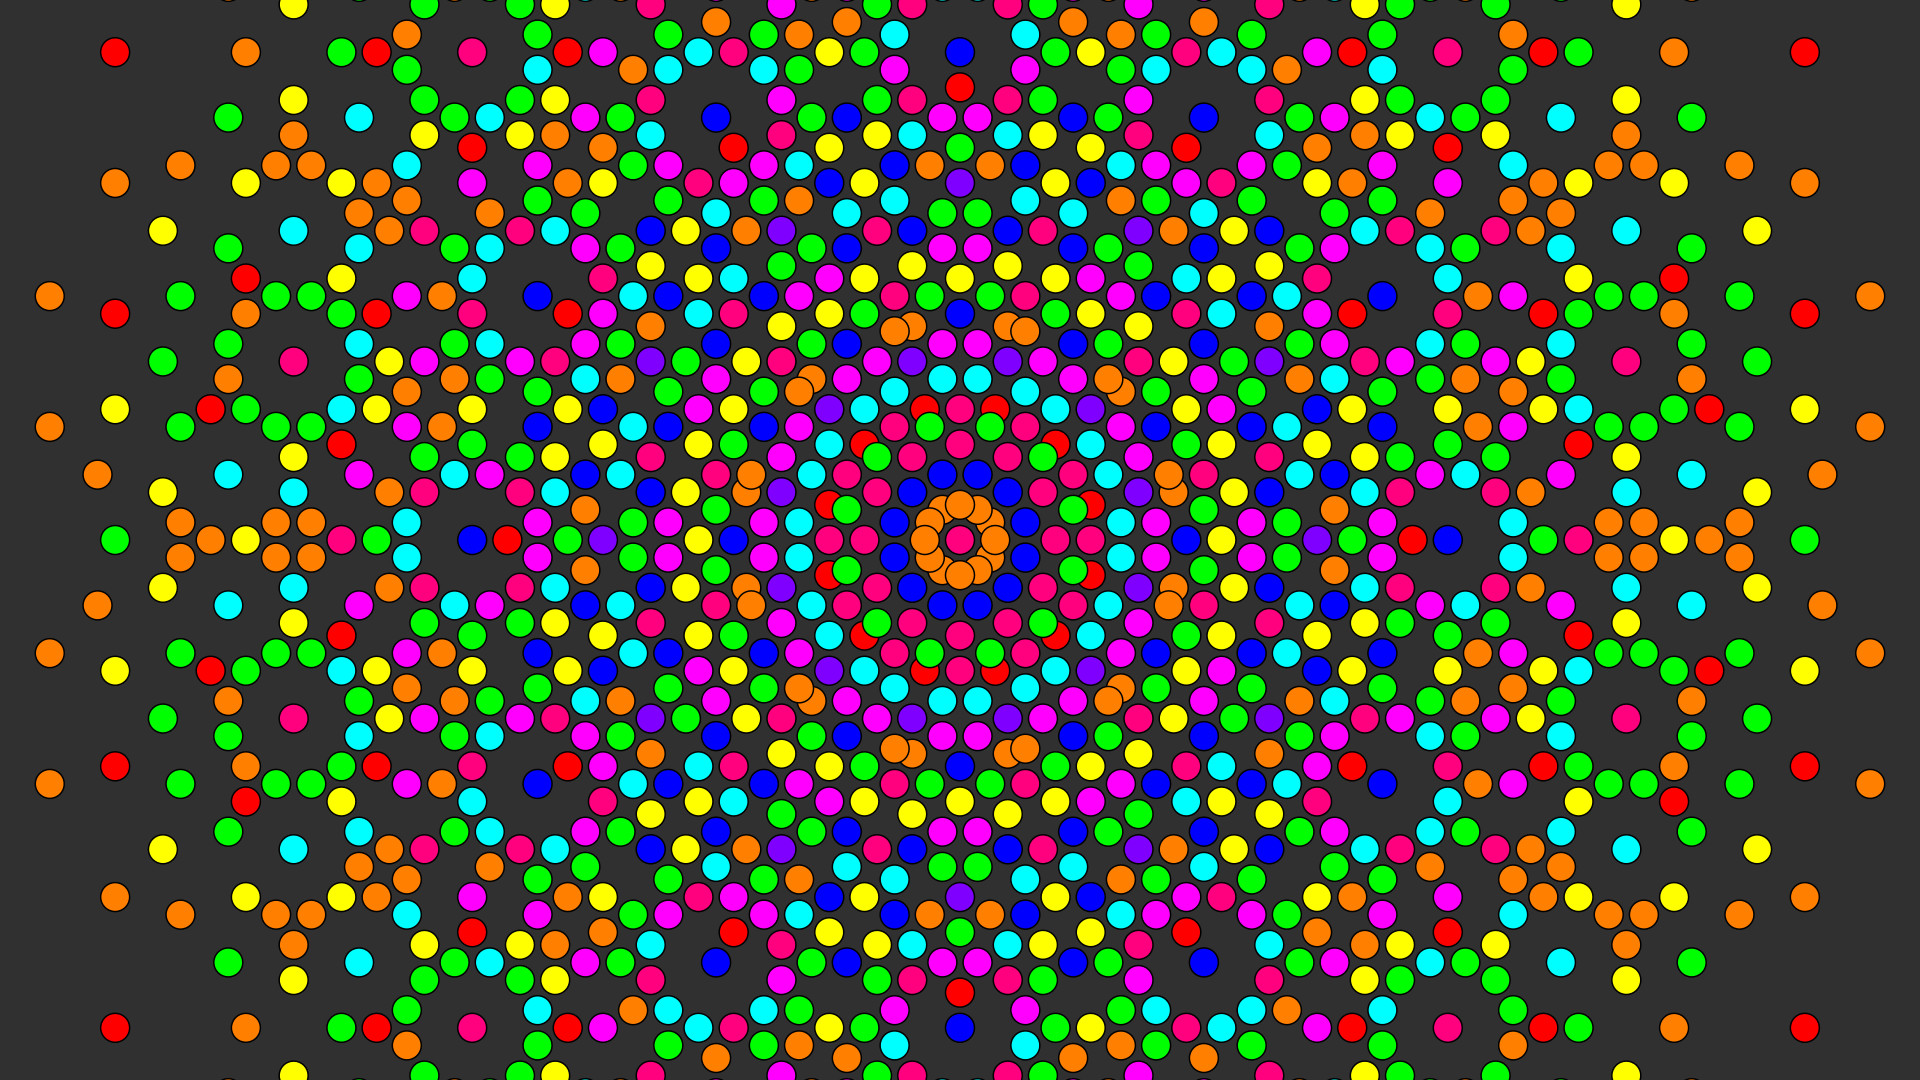 psychedelic, Colorful, Circle, Artwork, Abstract, Symmetry .